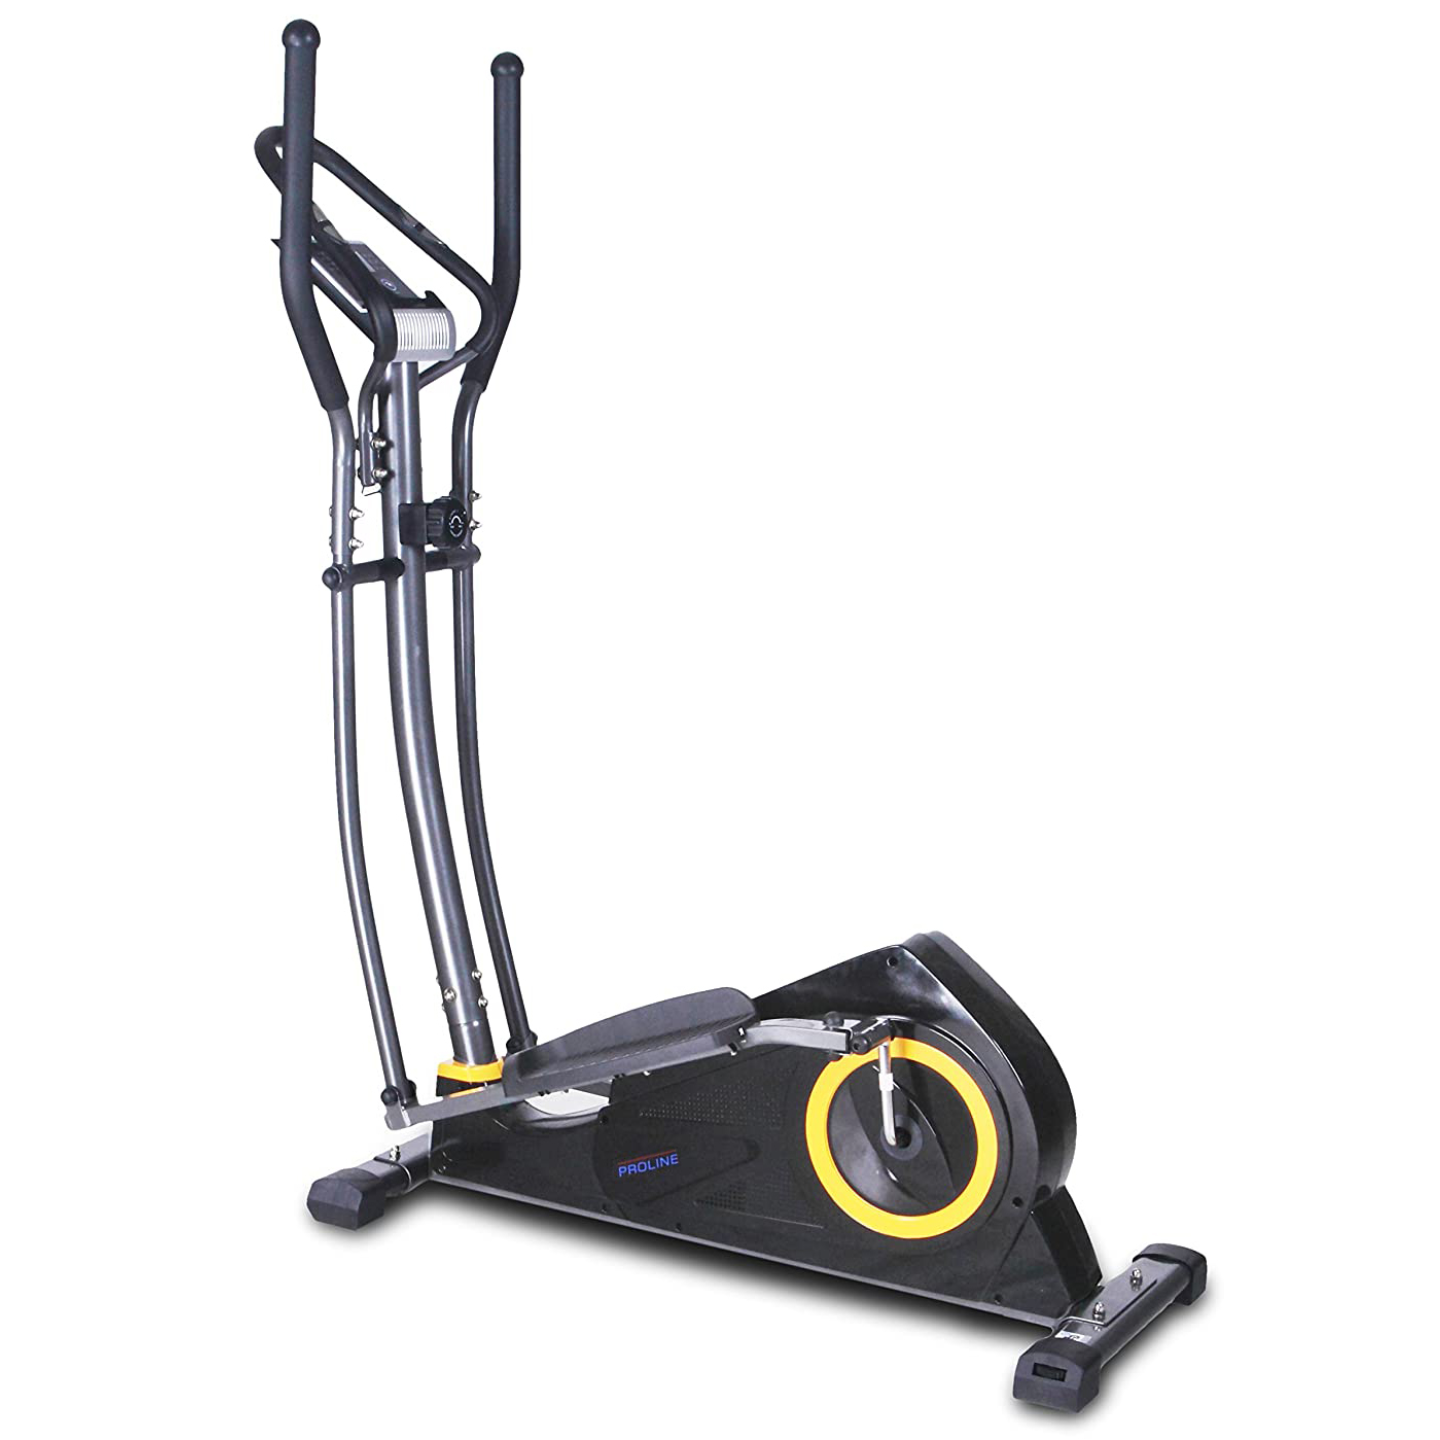 PROLINE 335E ELLIPTICAL